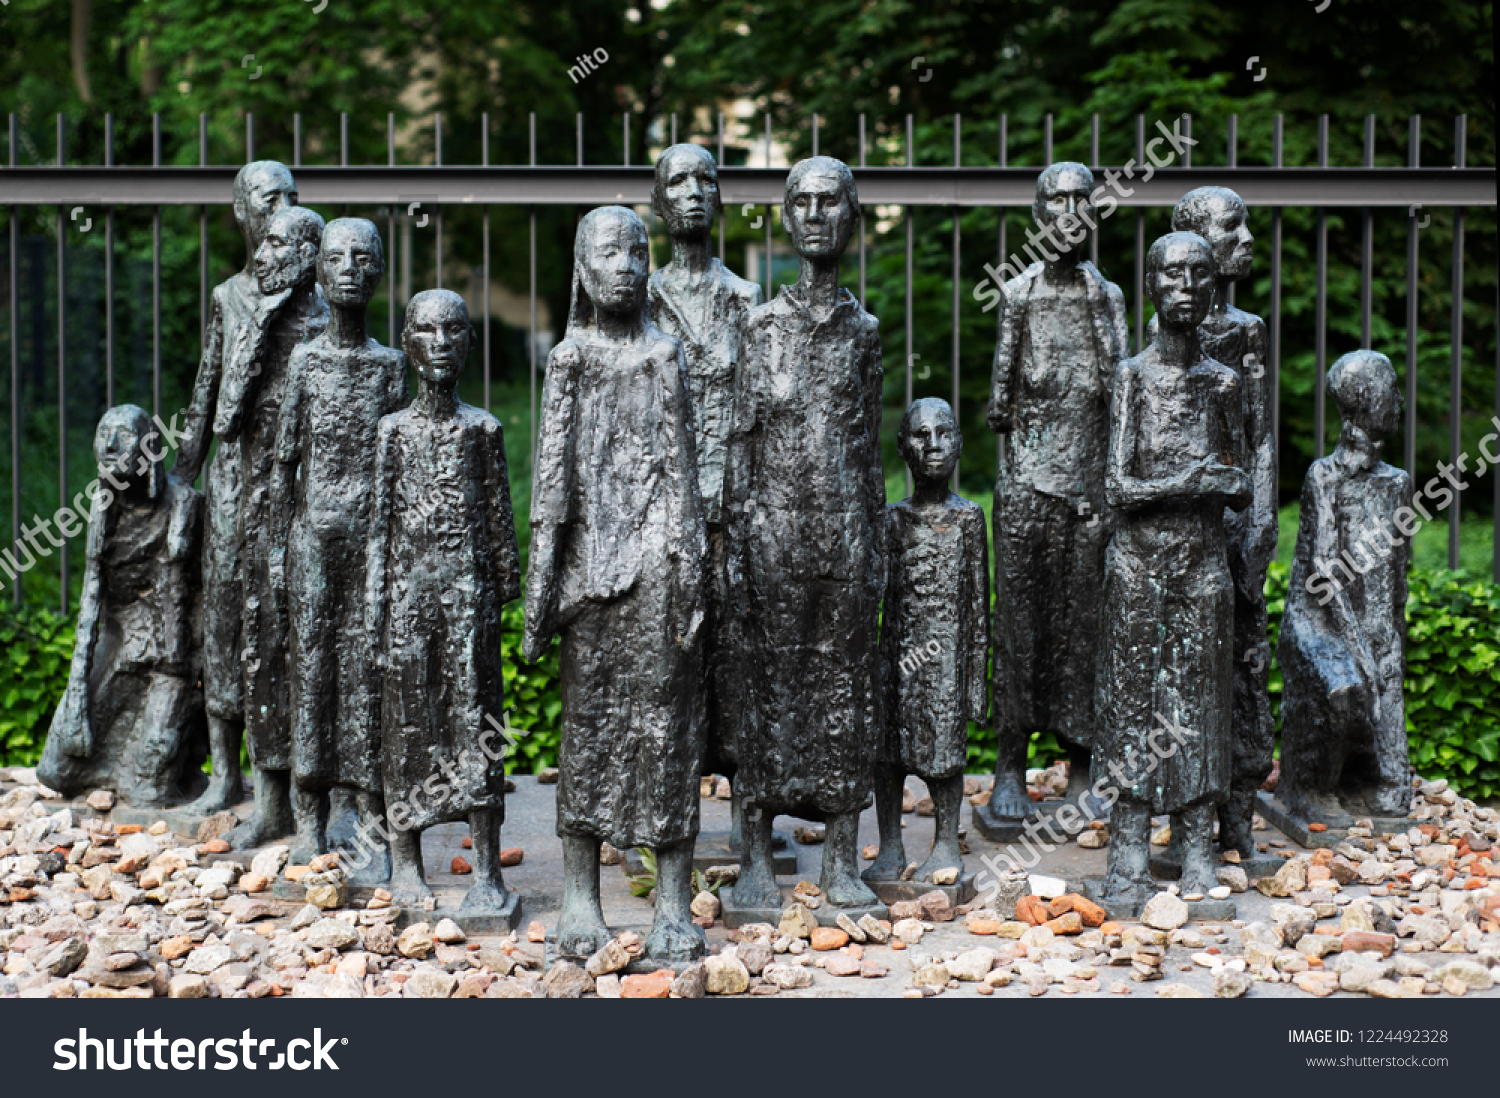 Jewish Cemetery At Grosse Hamburger Strasse In Berlin Germany Berlin Germany May 27 2018 View Stock Photo Edit Now 1224492328